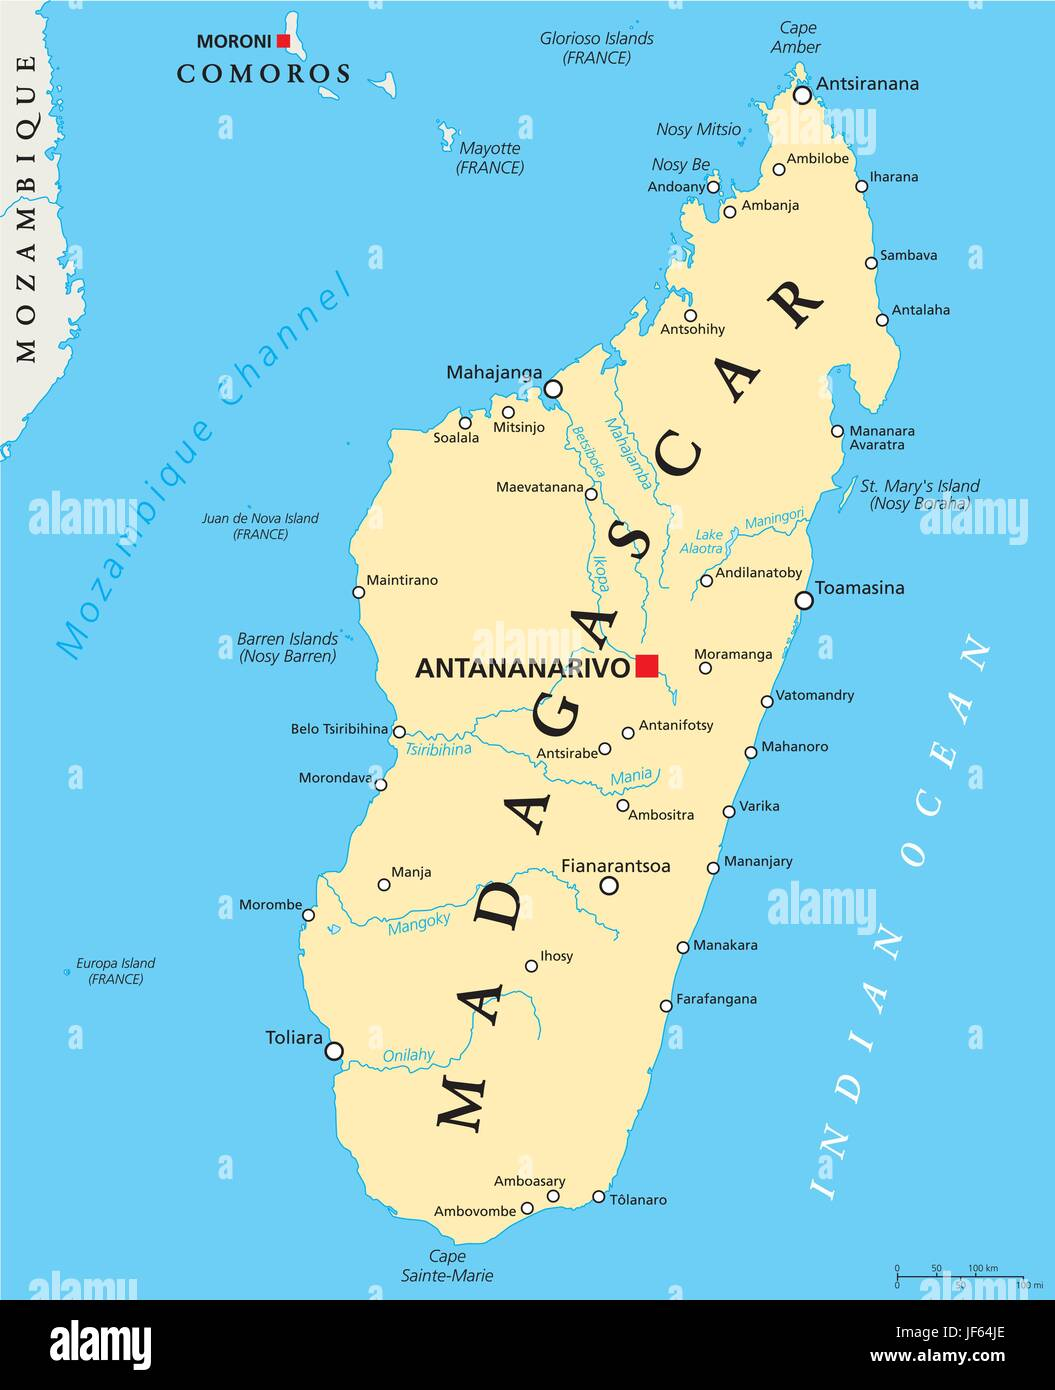 Madagascar Island Map madagascar, map, atlas, map of the world, travel, africa, country